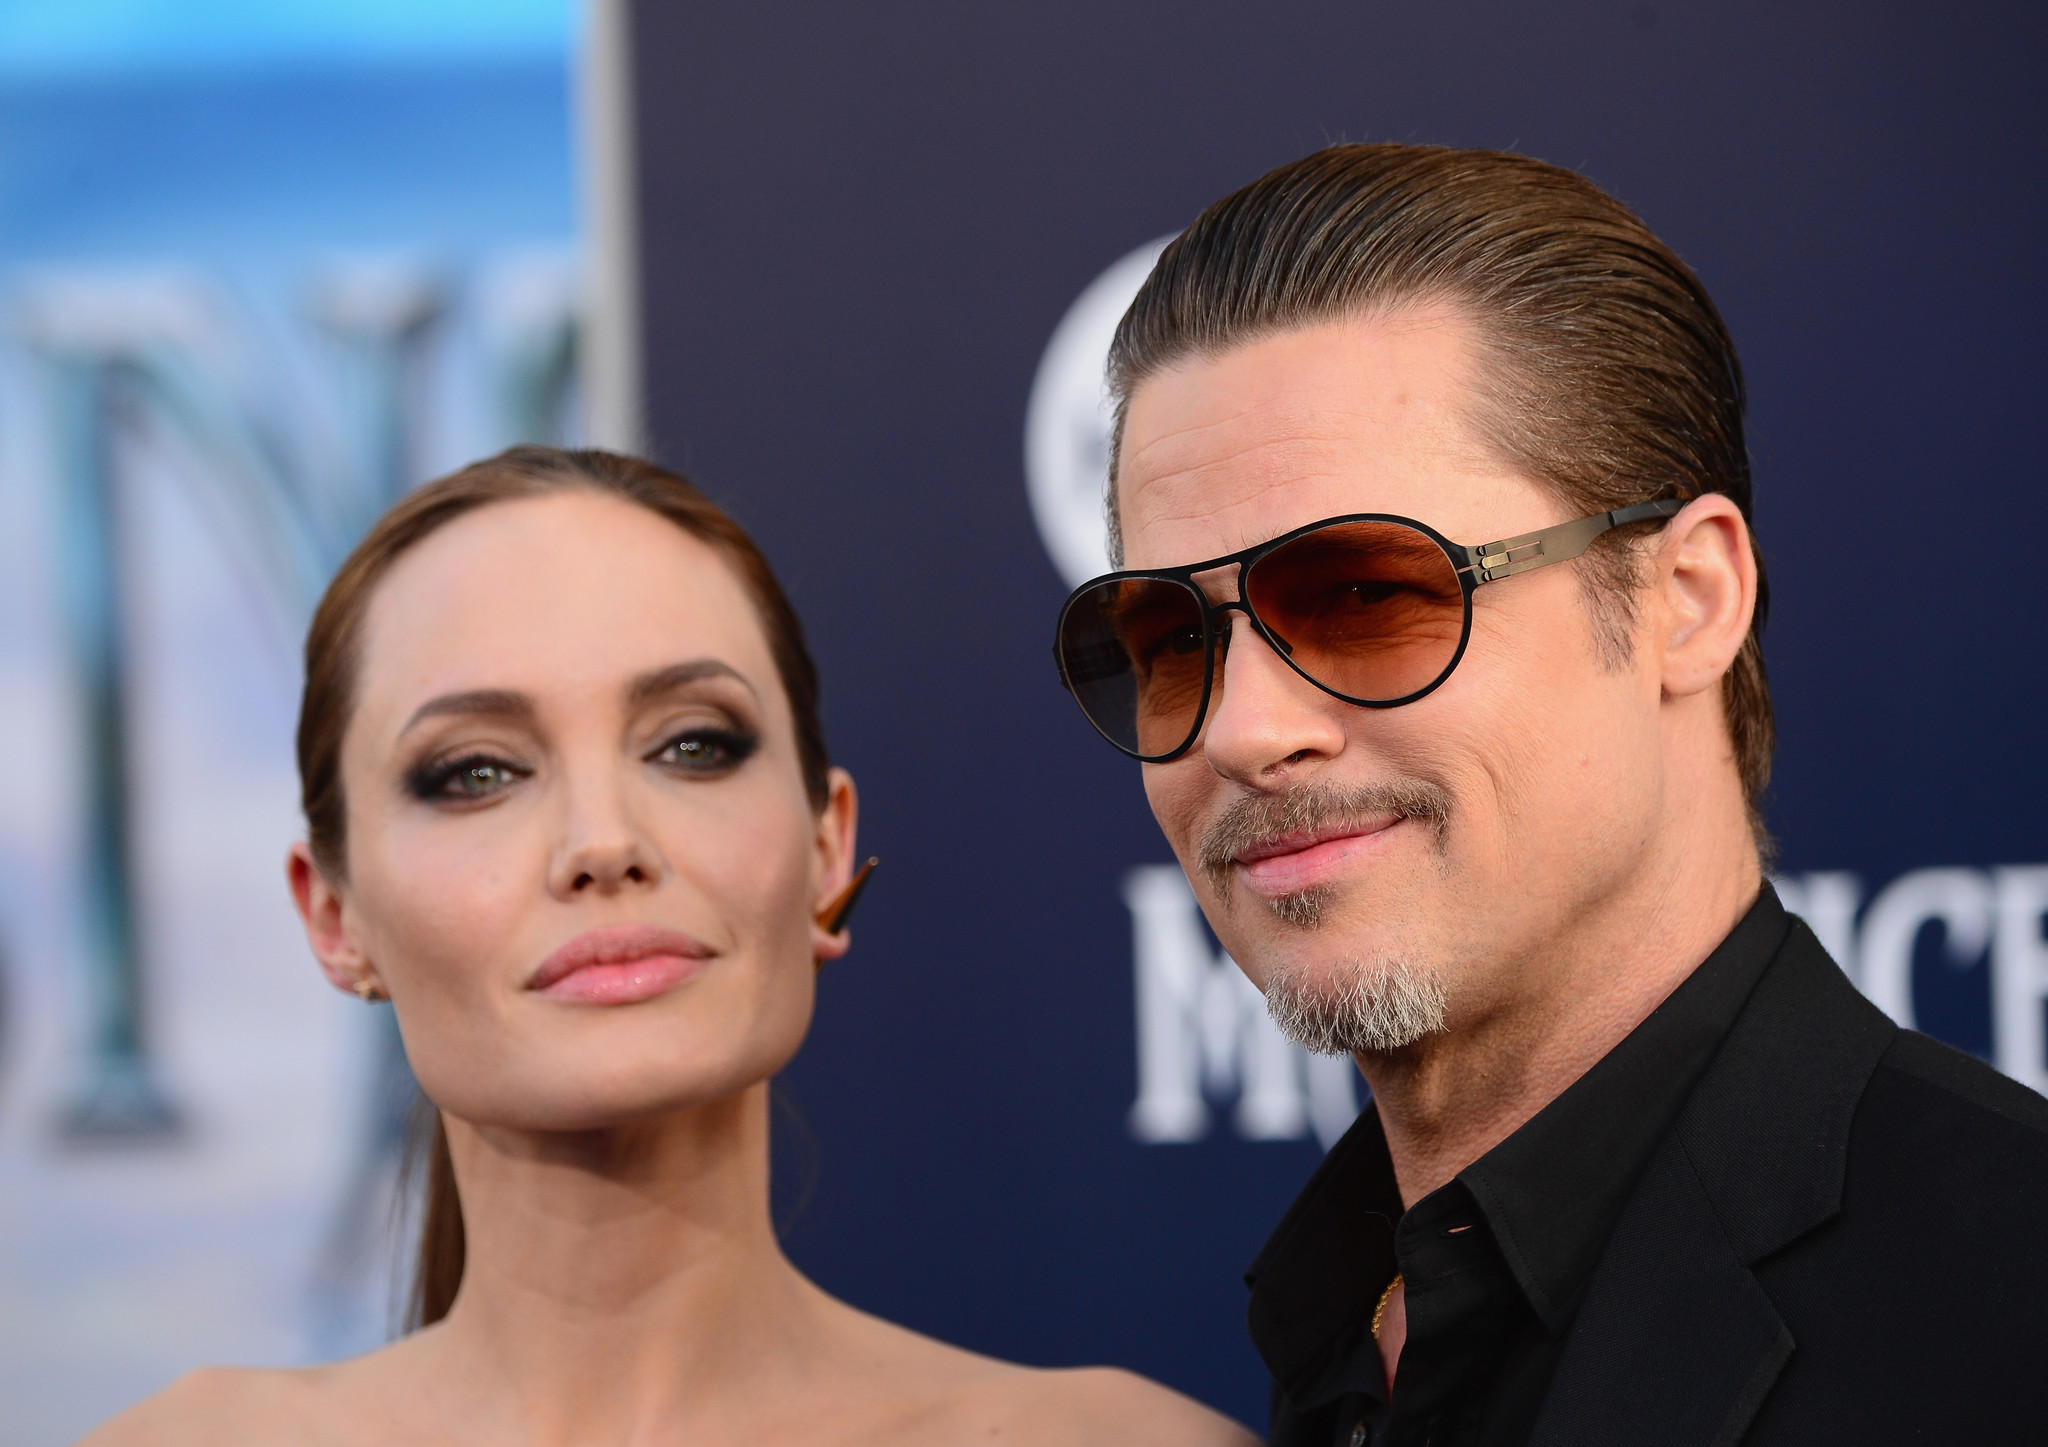 Angelina jolie tits for her divorce new images